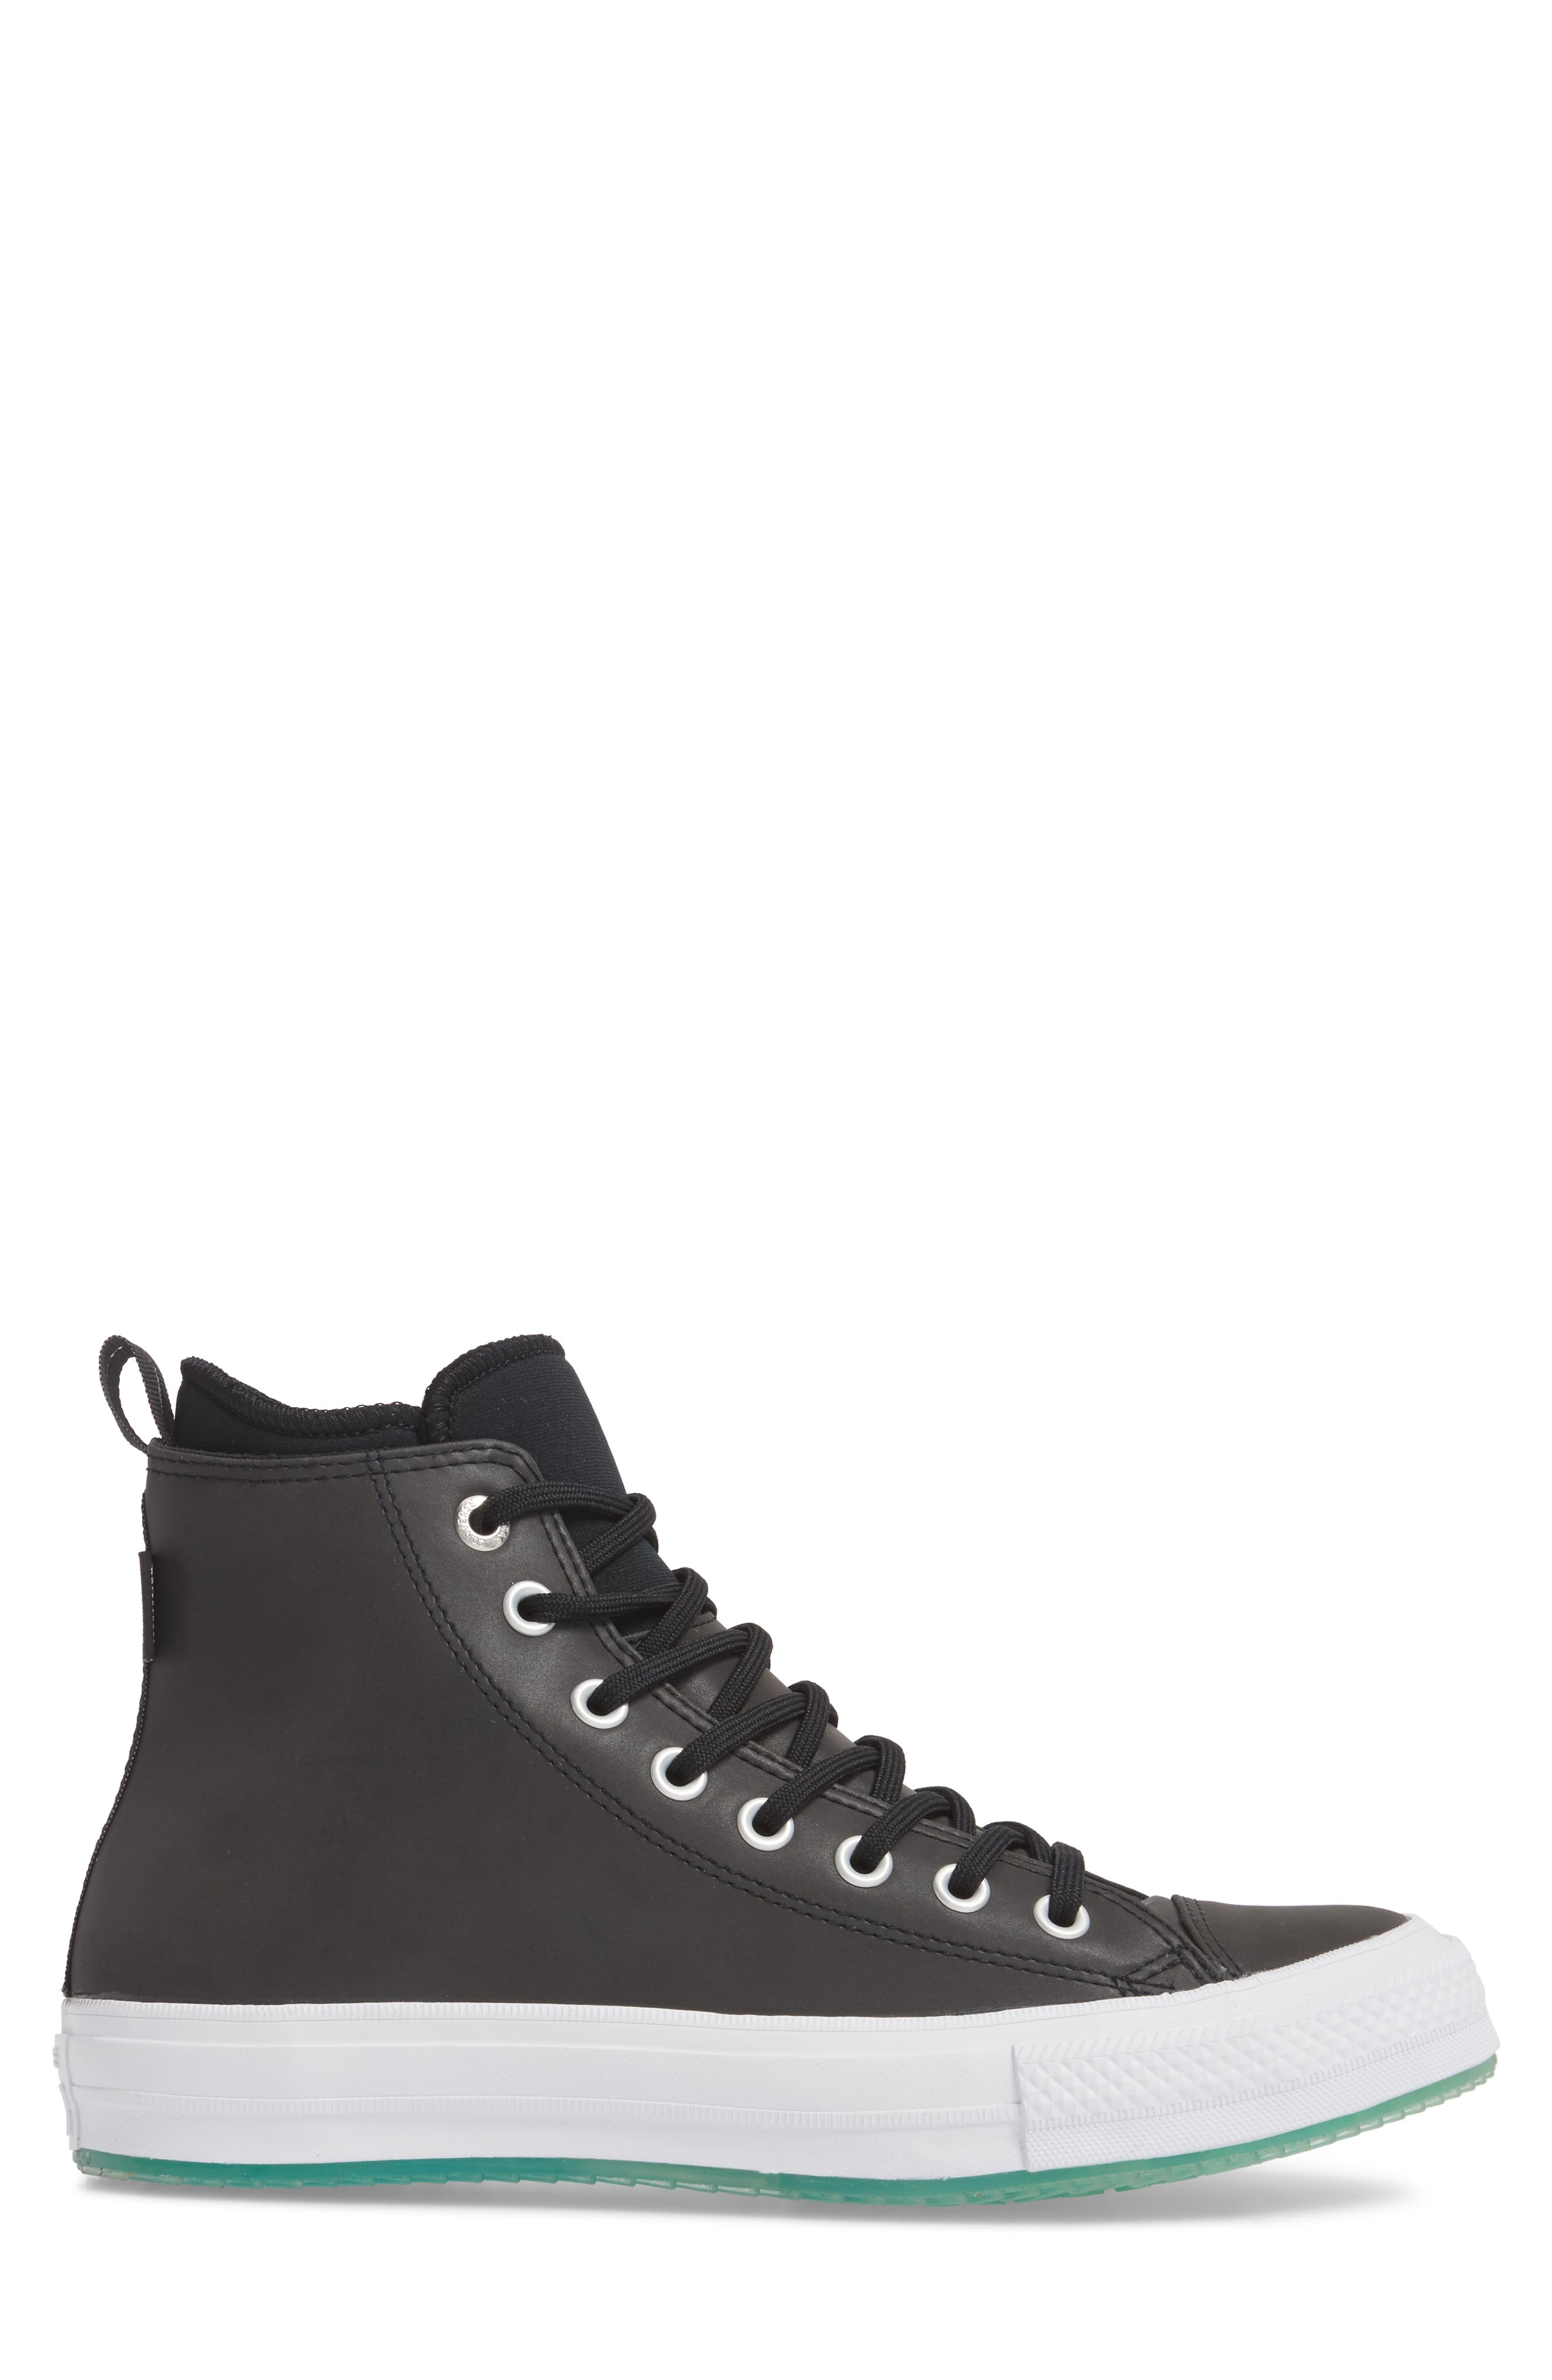 Chuck Taylor<sup>®</sup> All Star<sup>®</sup> Counter Climate Waterproof Sneaker,                             Alternate thumbnail 3, color,                             Black